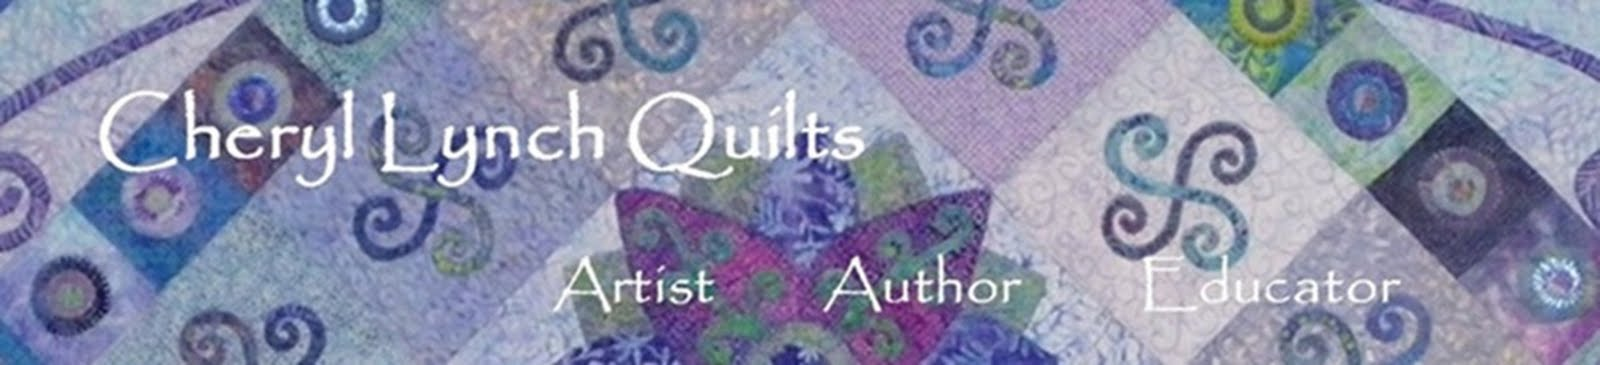 Cheryl Lynch Quilts